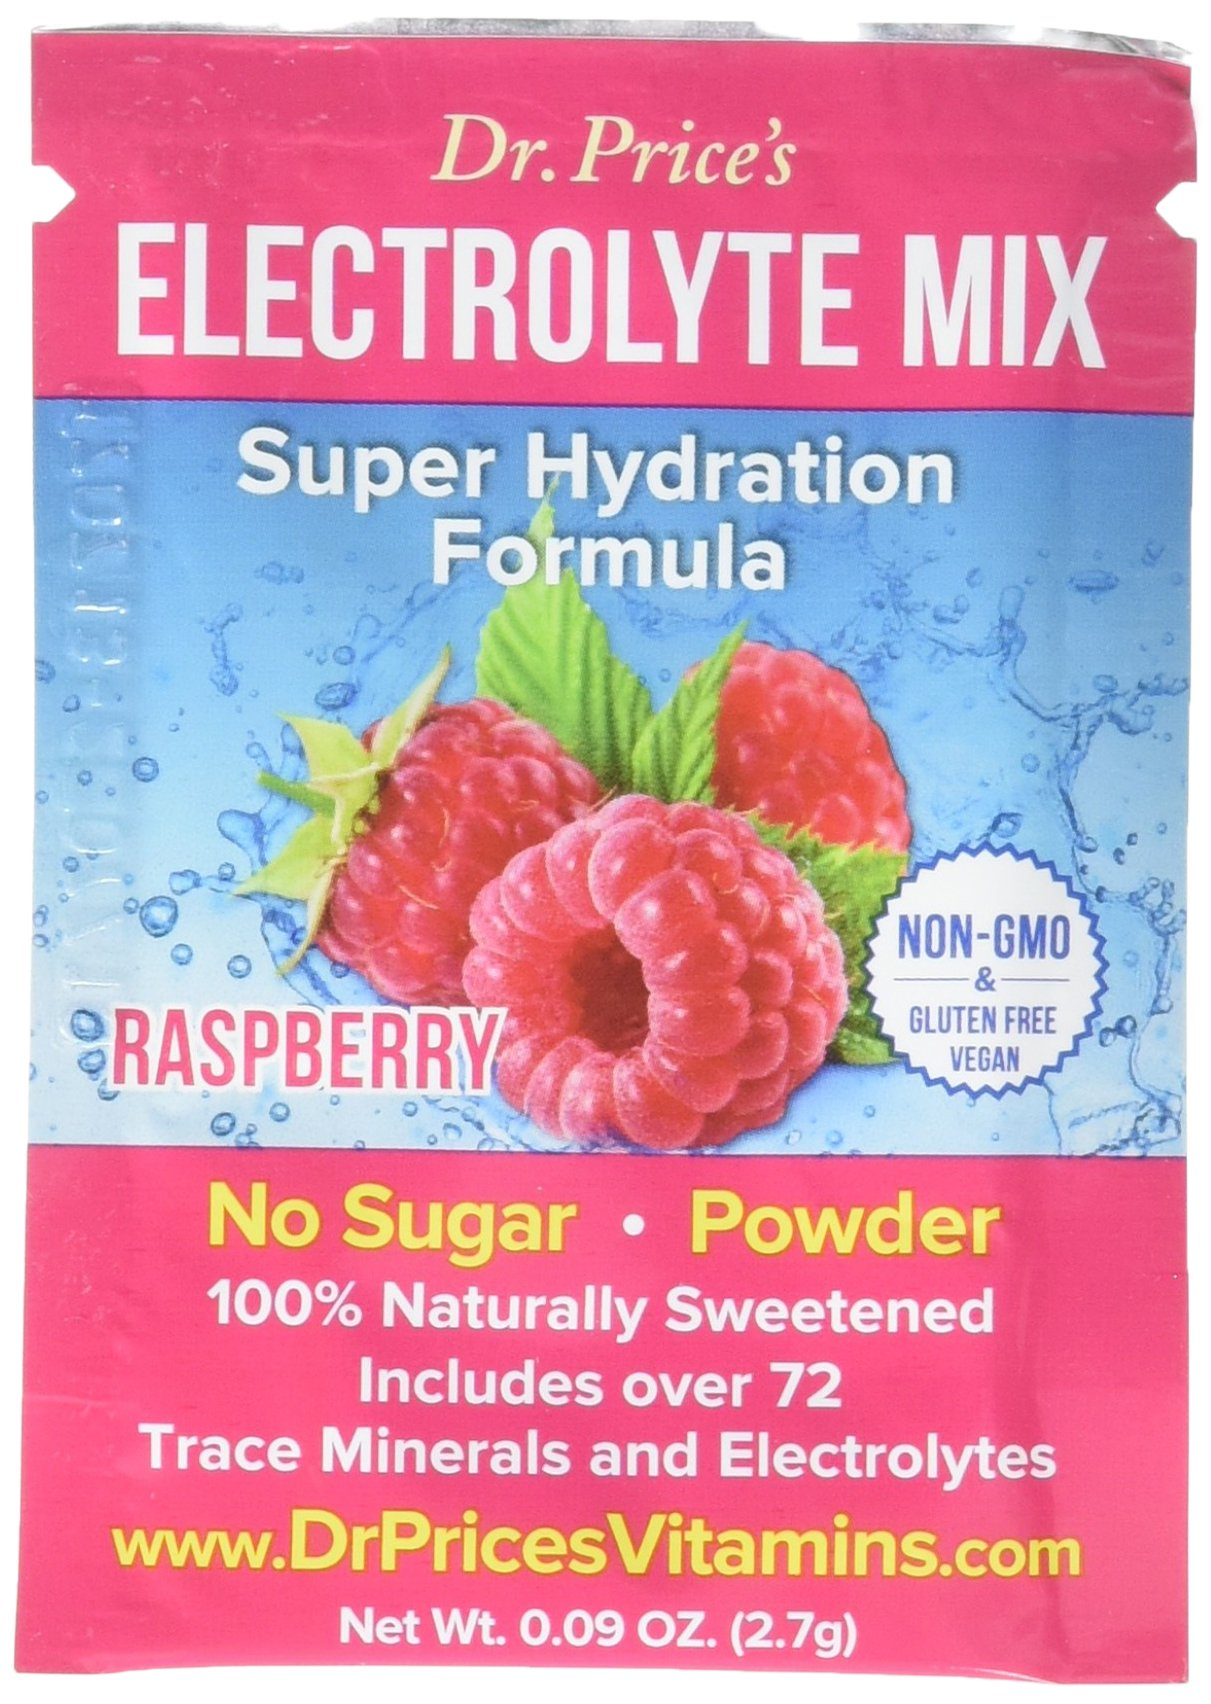 Electrolyte Mix Super Hydration Powder + 72 Trace Minerals | NEW! Raspberry Flavor (30 packets) Sports Drink Mix | Dr. Price's Vitamins | No Sugar, Non-GMO, Gluten Free, Keto & Vegan